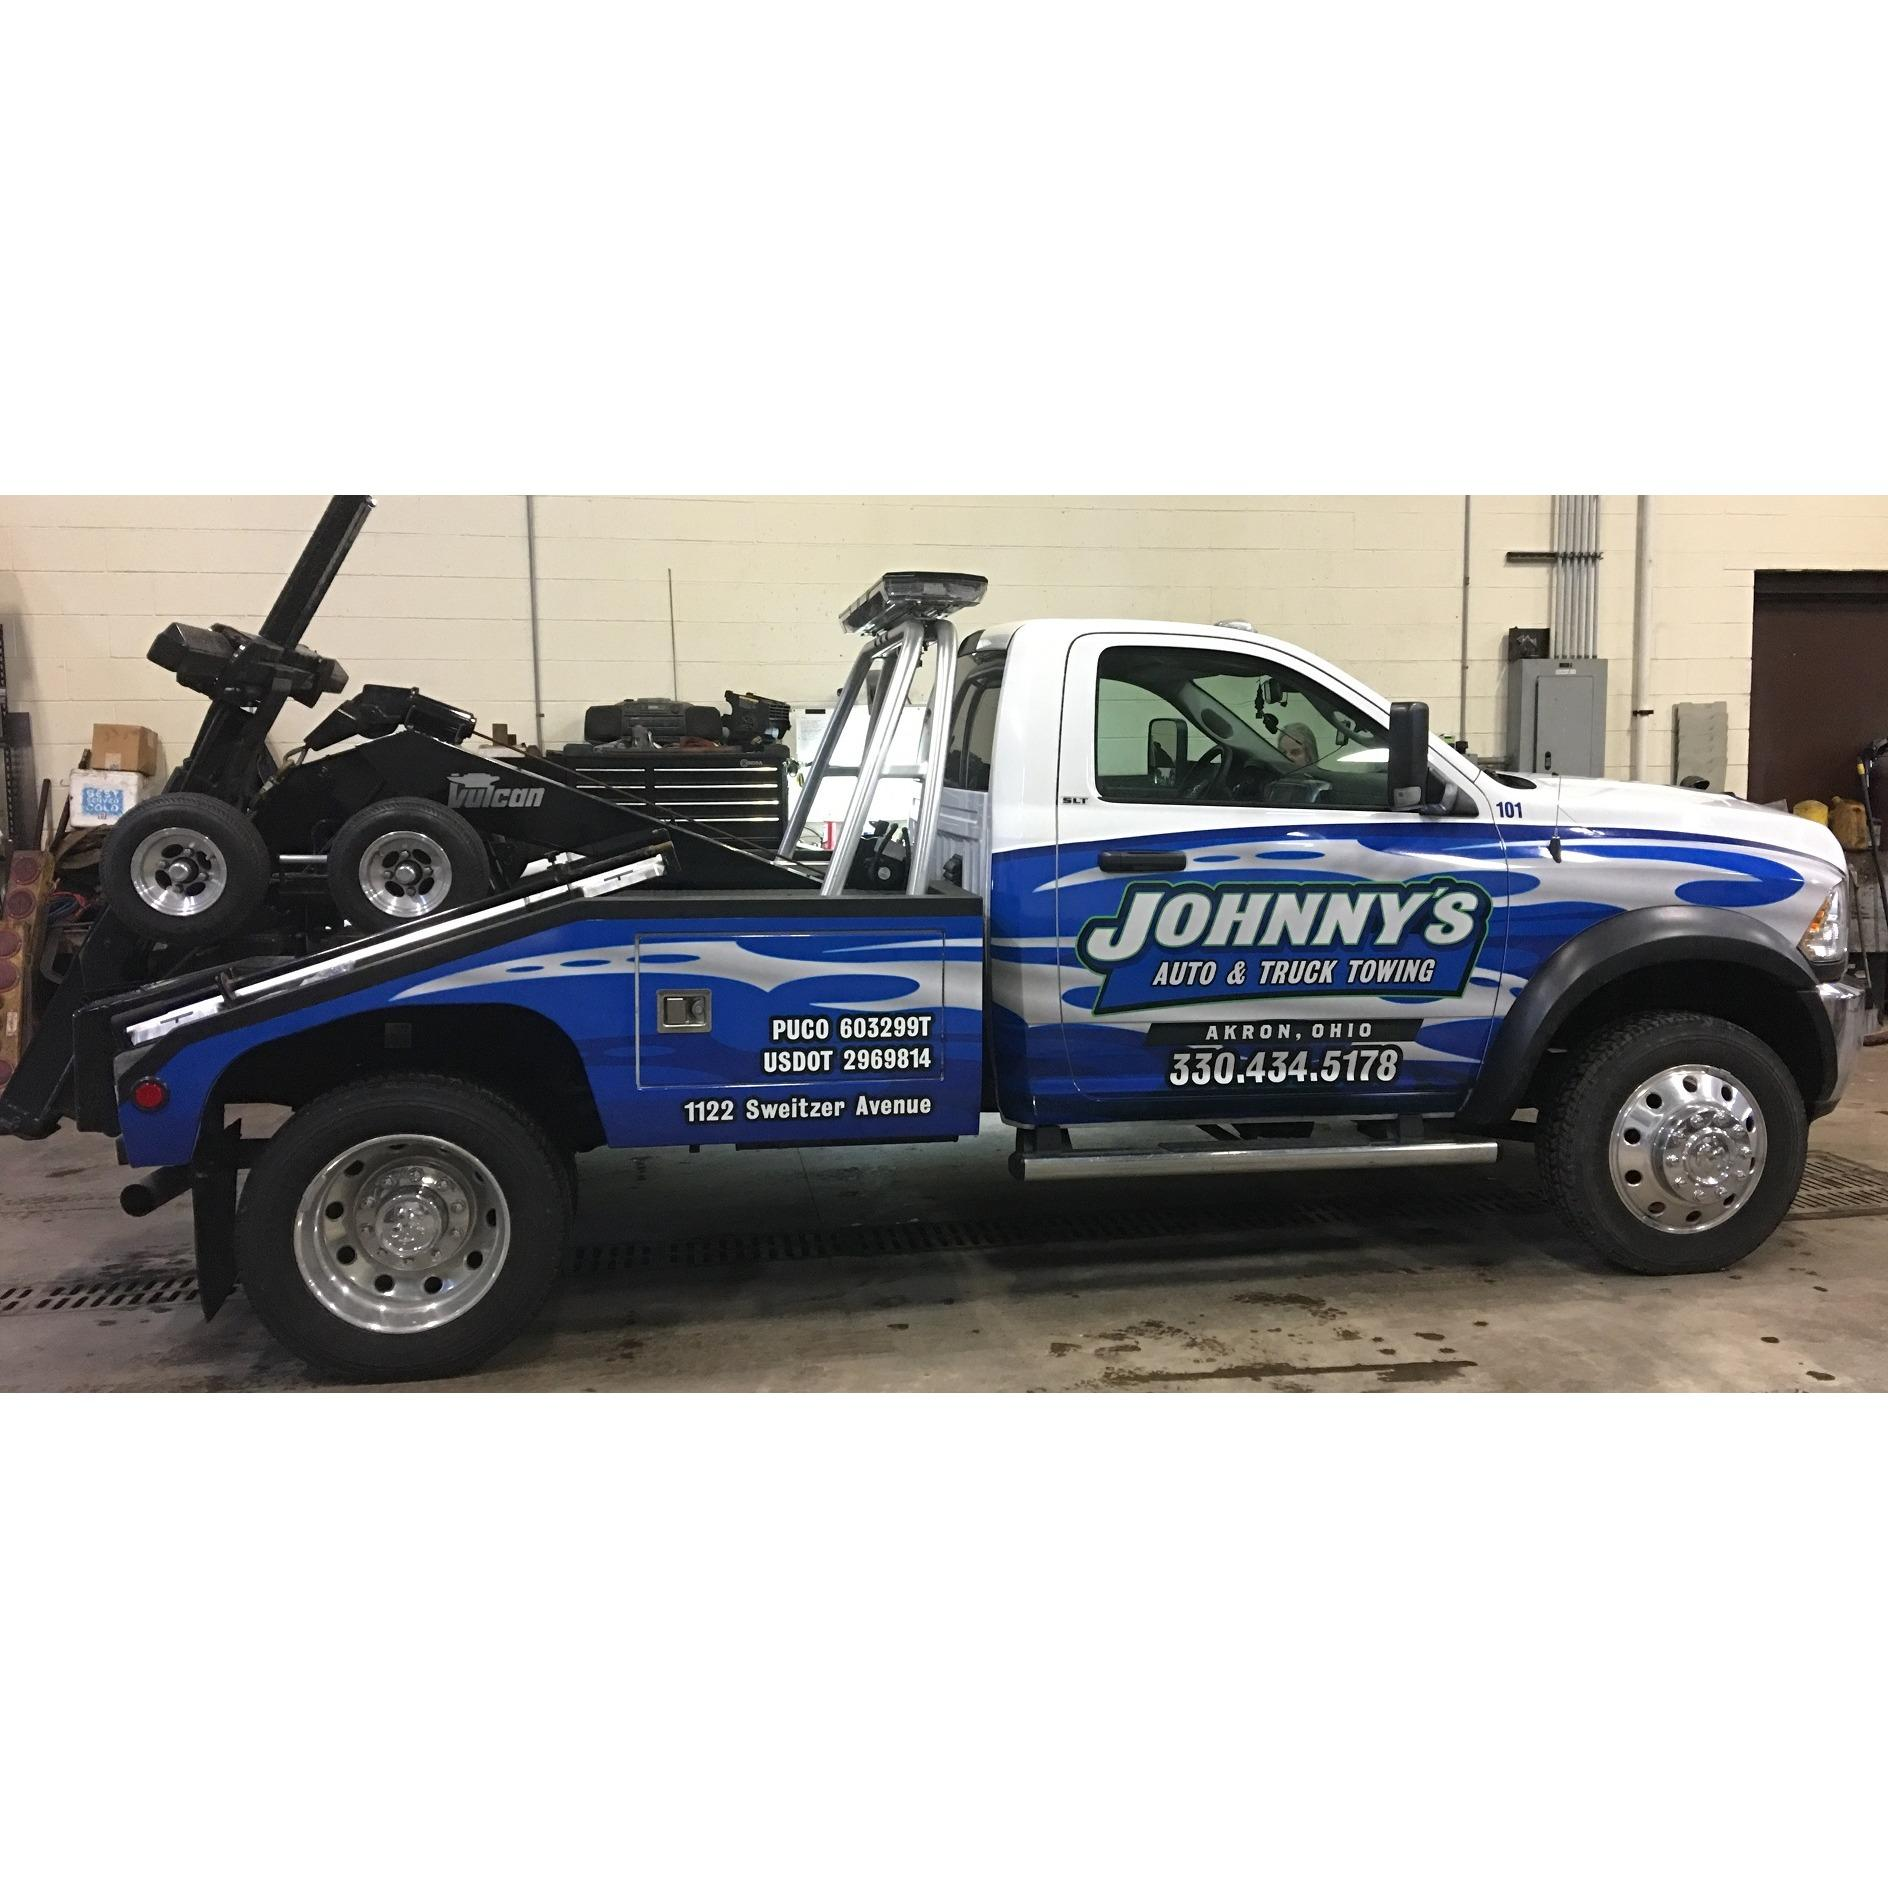 Johnny's Auto & Truck Towing